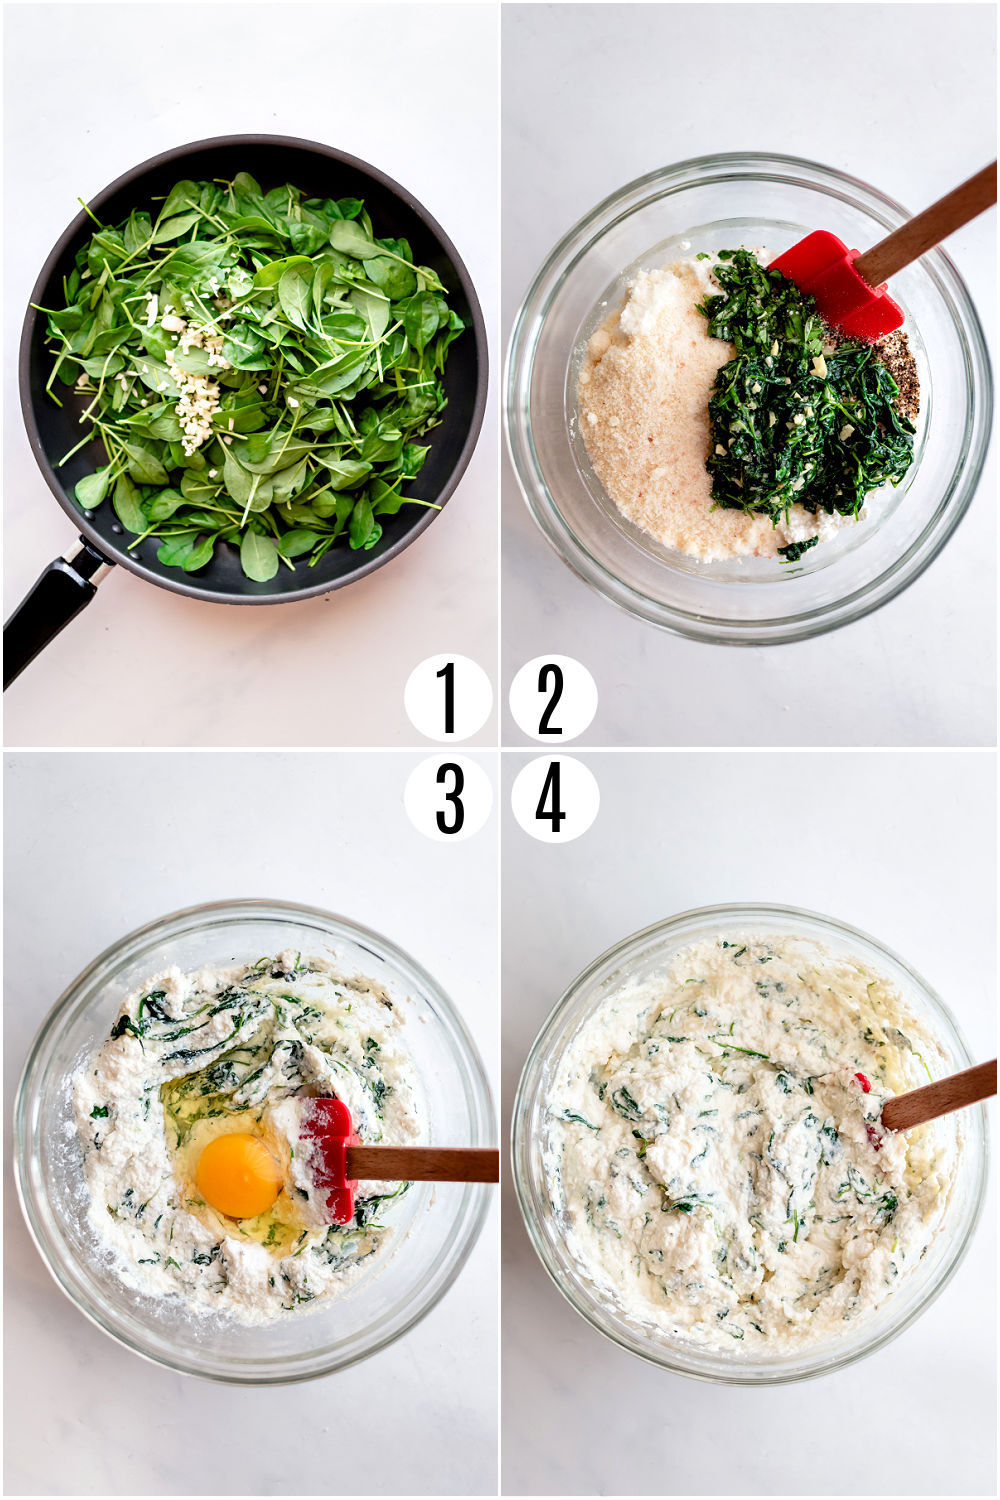 Step by step photos showing how to make ricotta filling for zucchini rollups.